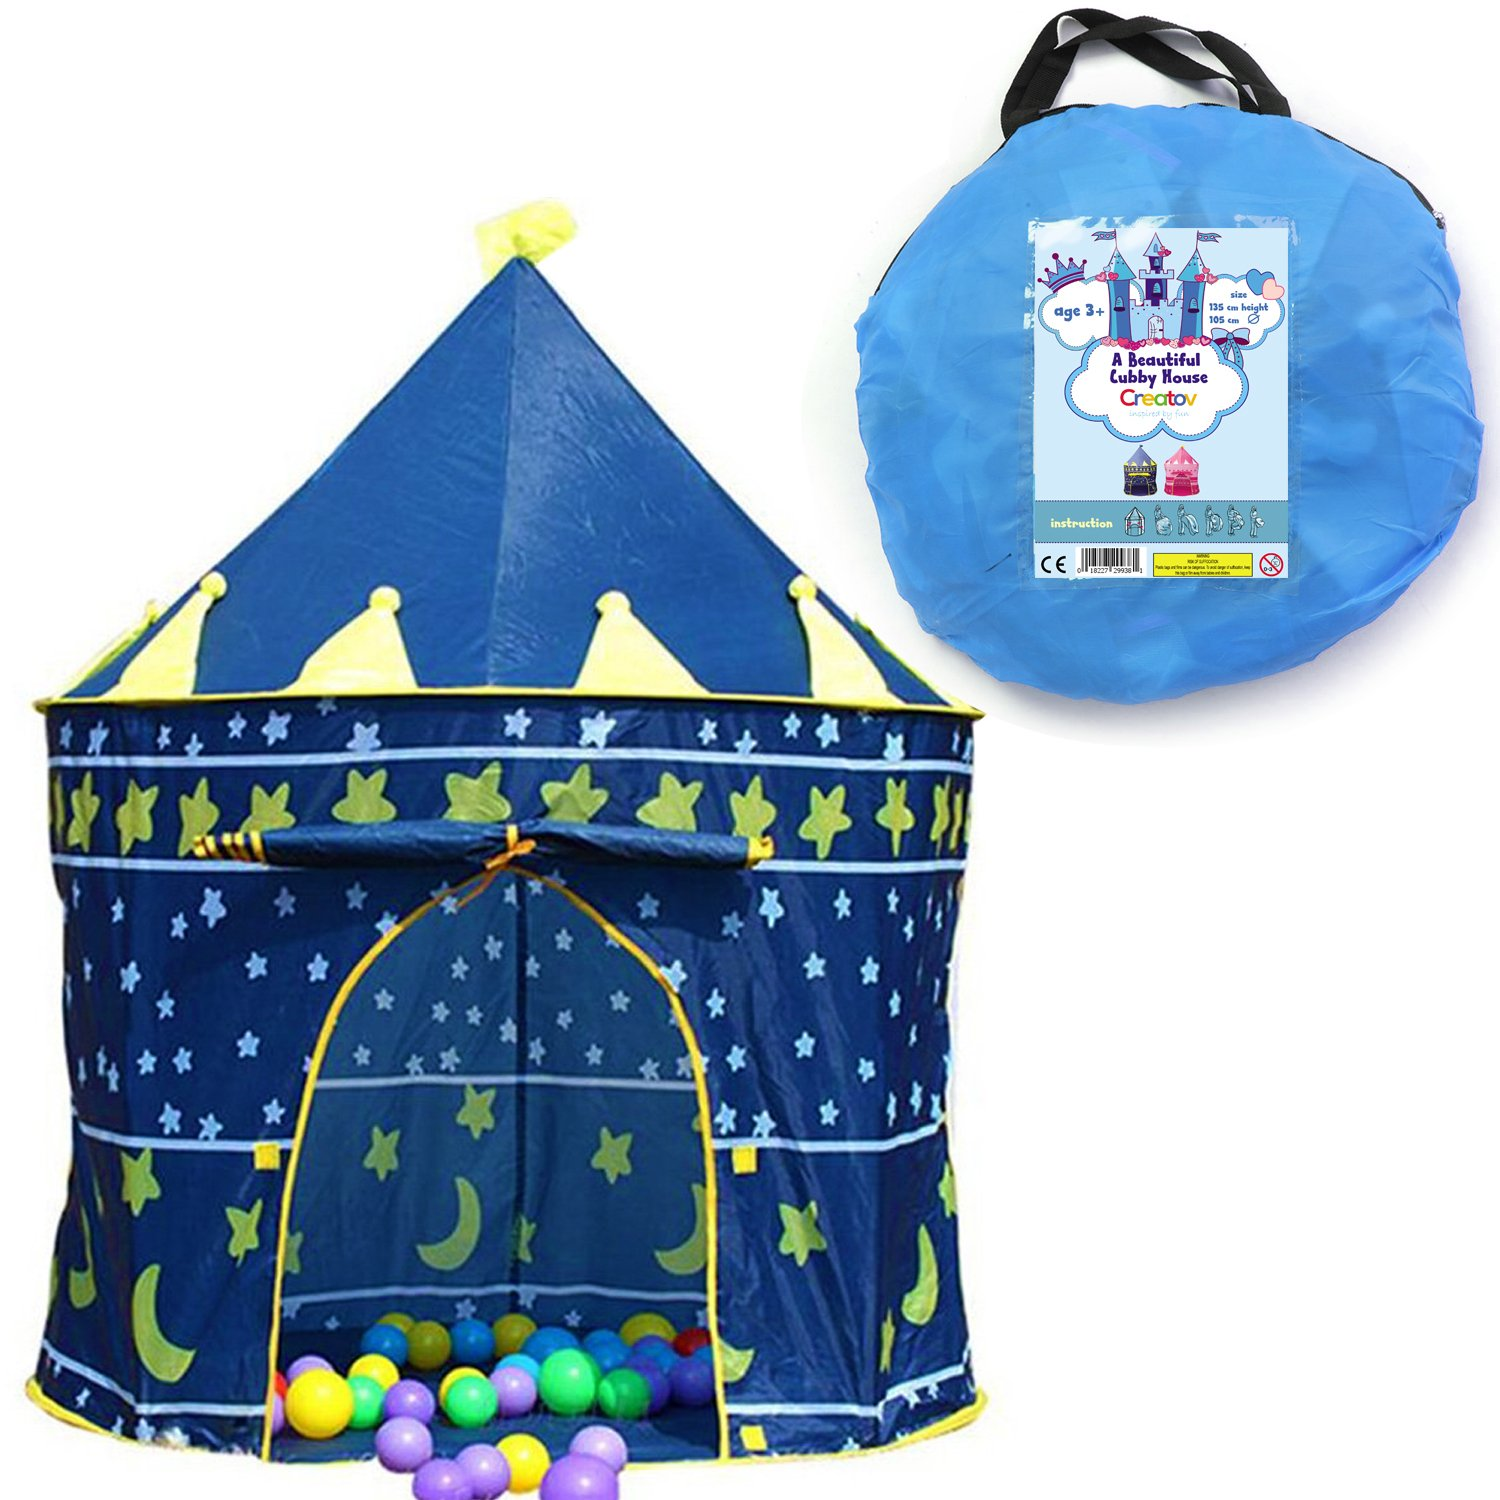 Amazon.com Kids Play Tent Indoor Outdoor - for Boys Girls Baby Toddler Playhouse Prince House Castle Blue Foldable Tents with Carry Case by Creatov Toys u0026 ...  sc 1 st  Amazon.com : kids glow tent - memphite.com